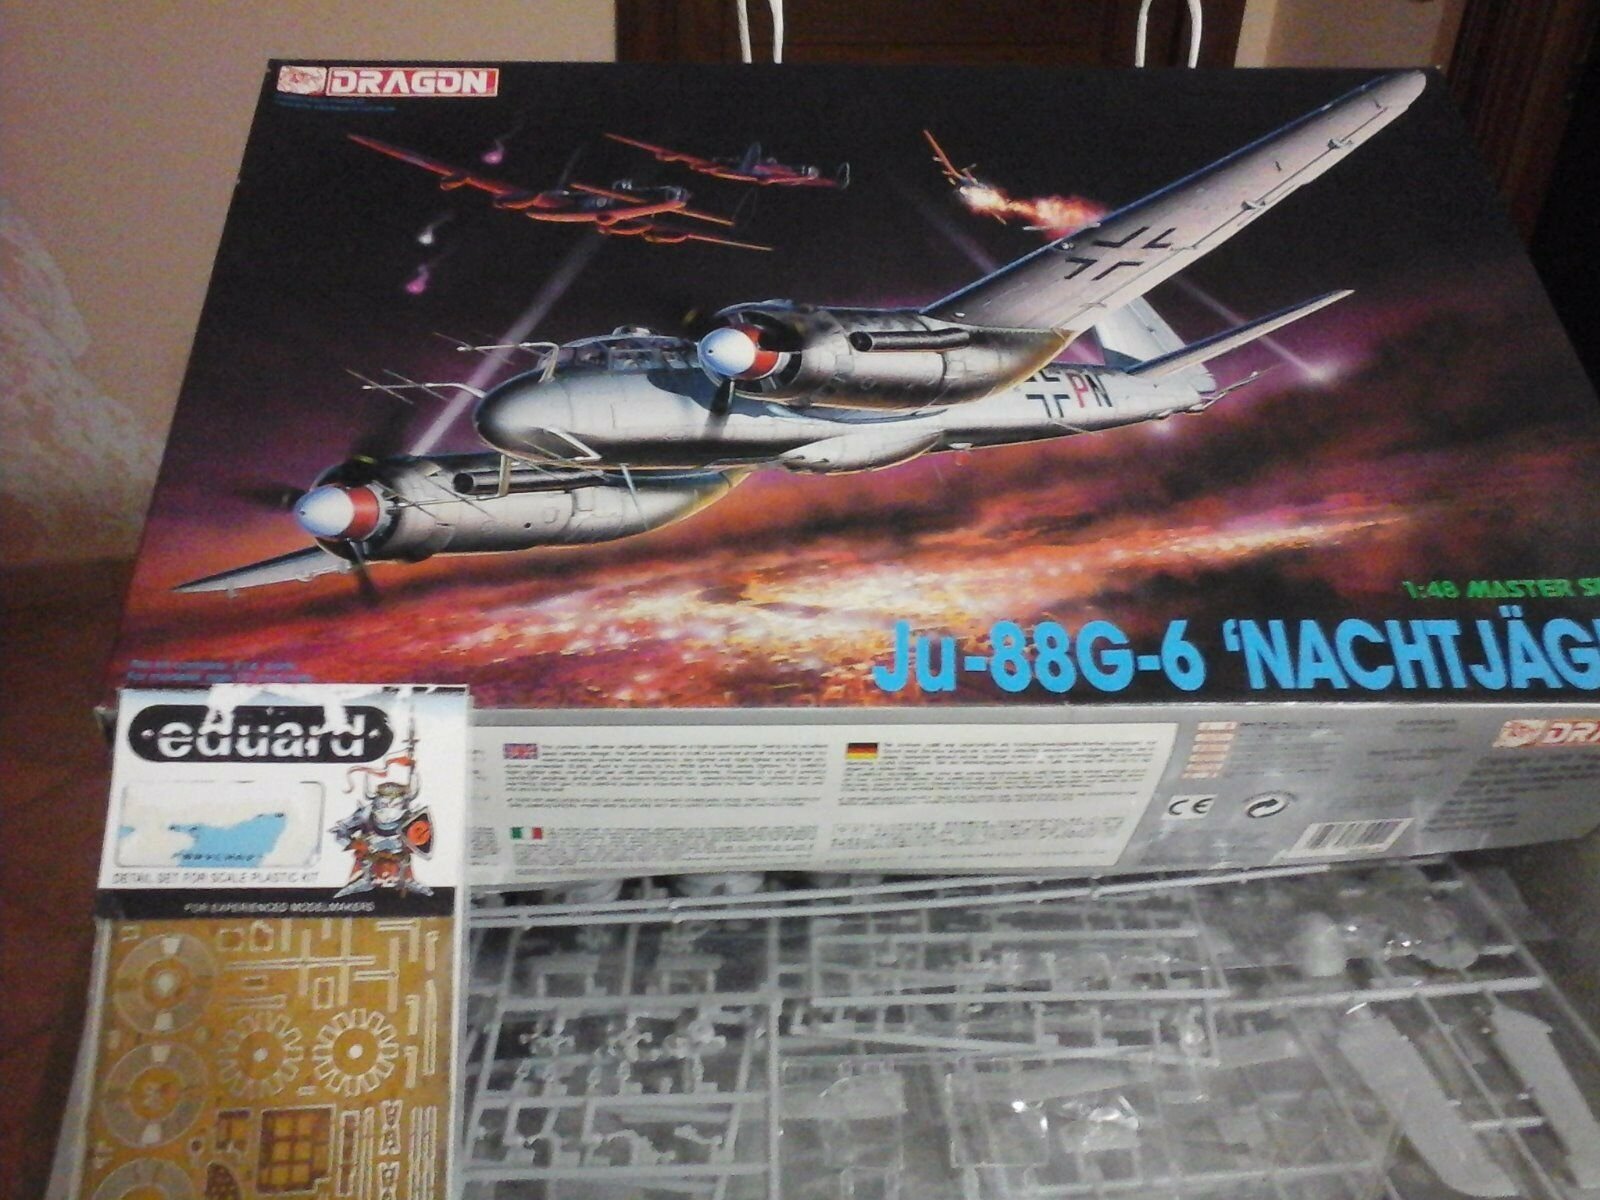 JUNKERS JU-88G-6 NACHTJAGER 1 48 48 48 SCALE DRAGON MODEL+PHOTOETCHED PARTS LIMITED ED fd6762